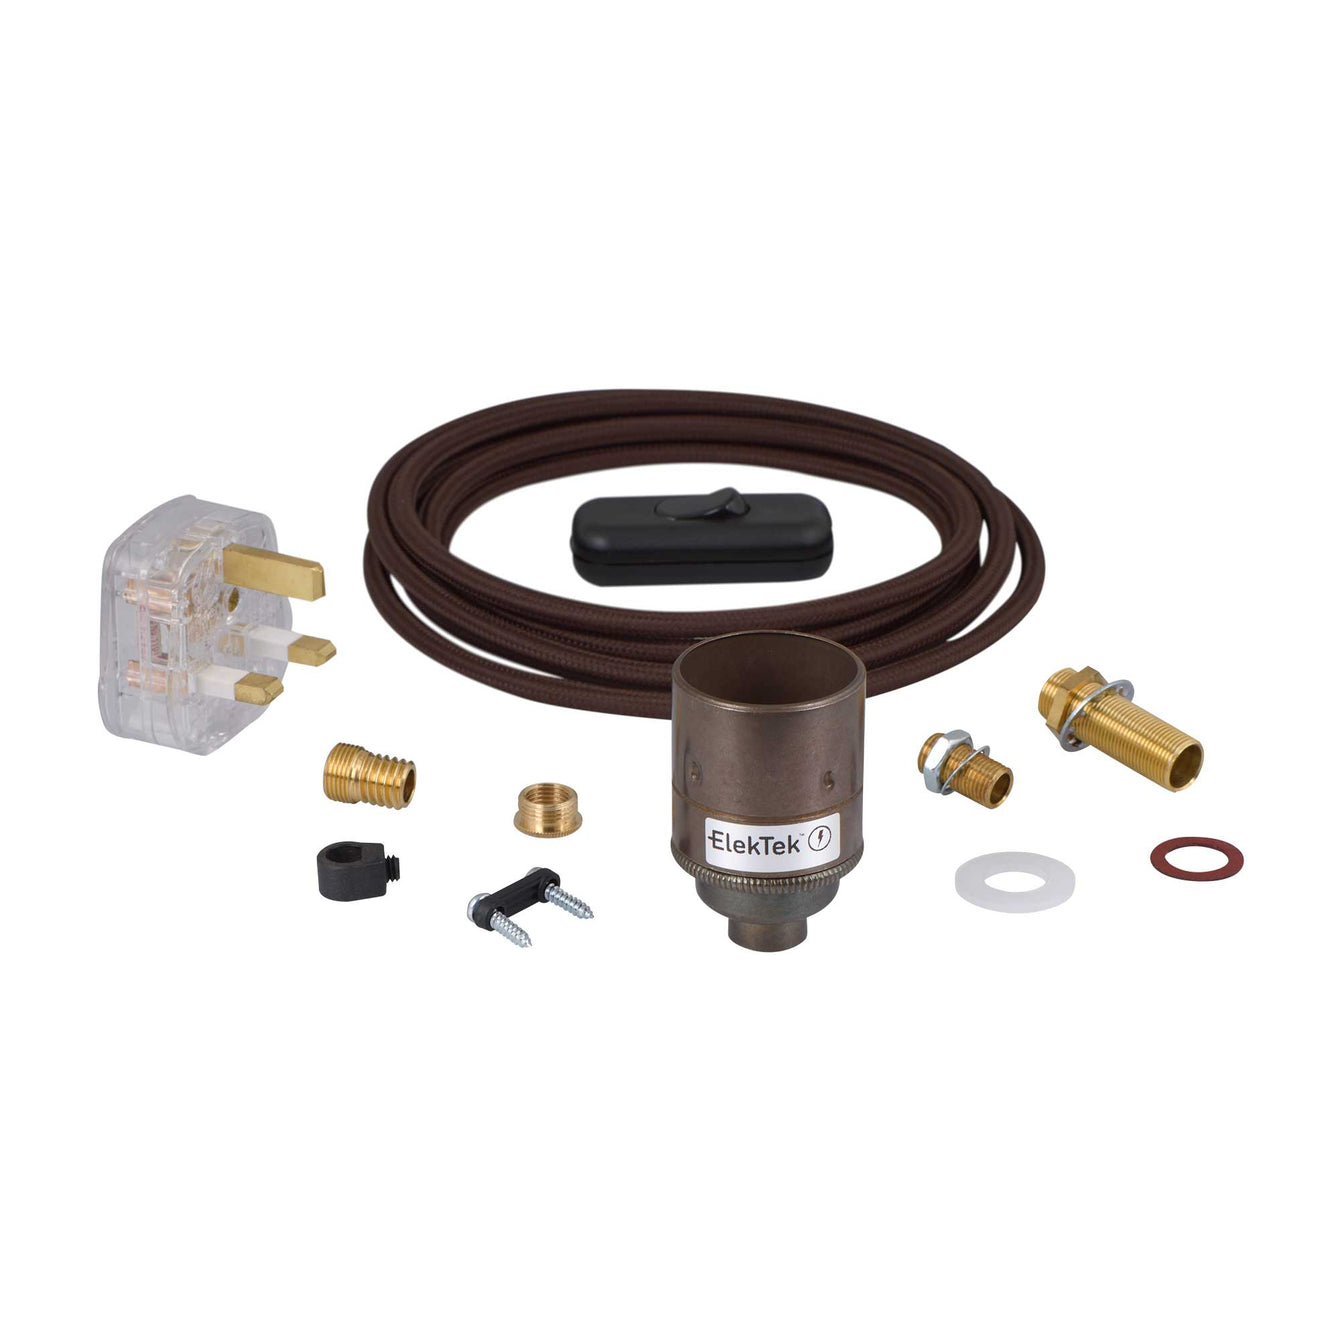 ElekTek Premium Lamp Kit Antique Brass Plain E27 Lamp Holder with Flex, In Line Switch and 3A UK Plug - Buy It Better Round